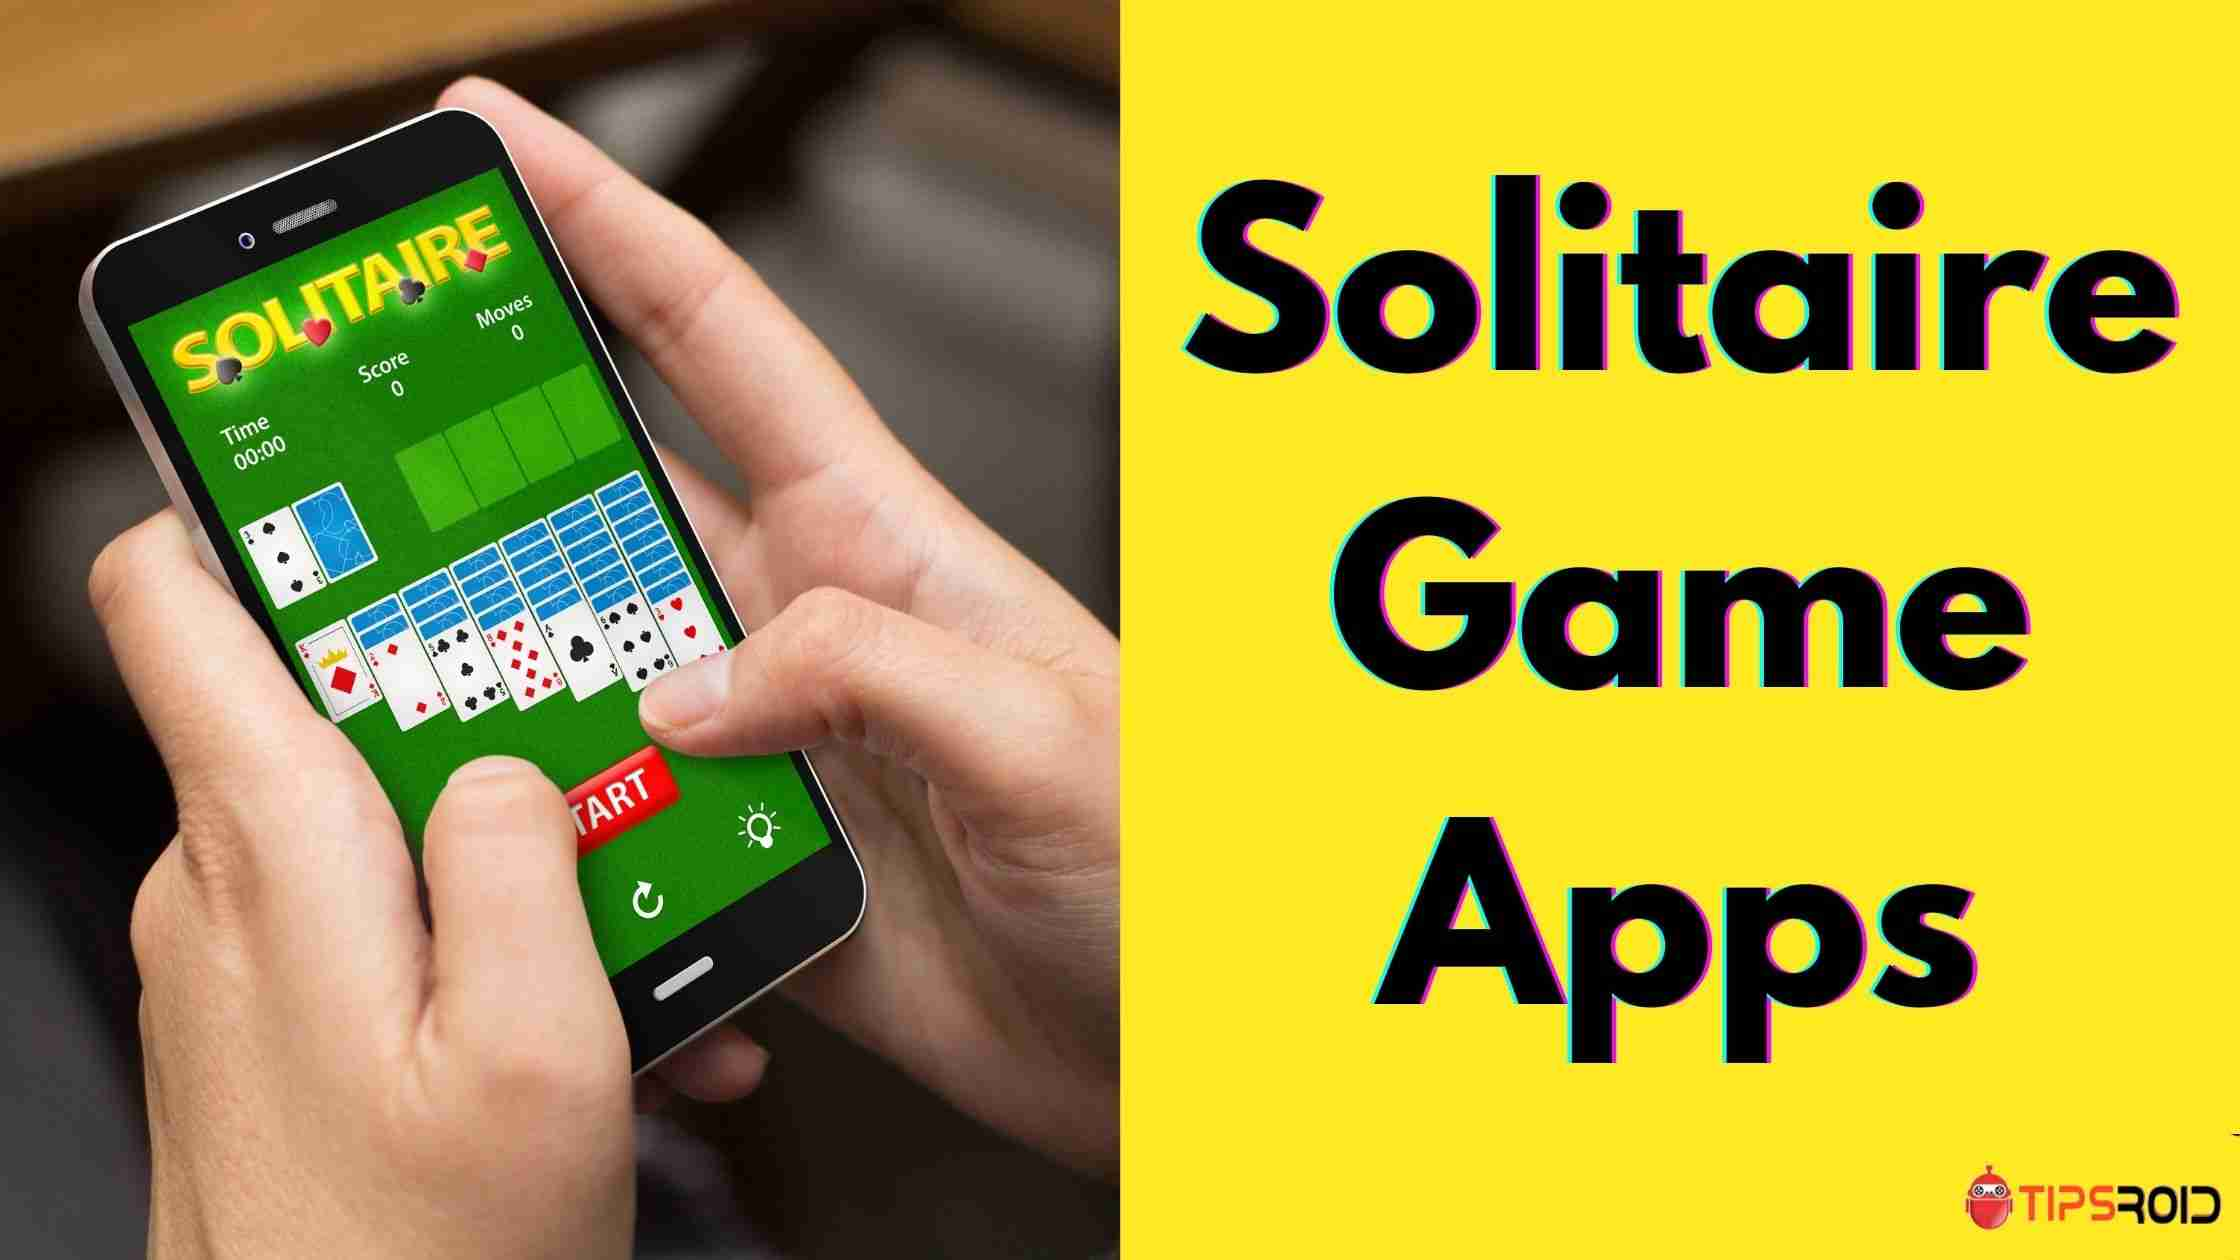 Solitaire Game Apps